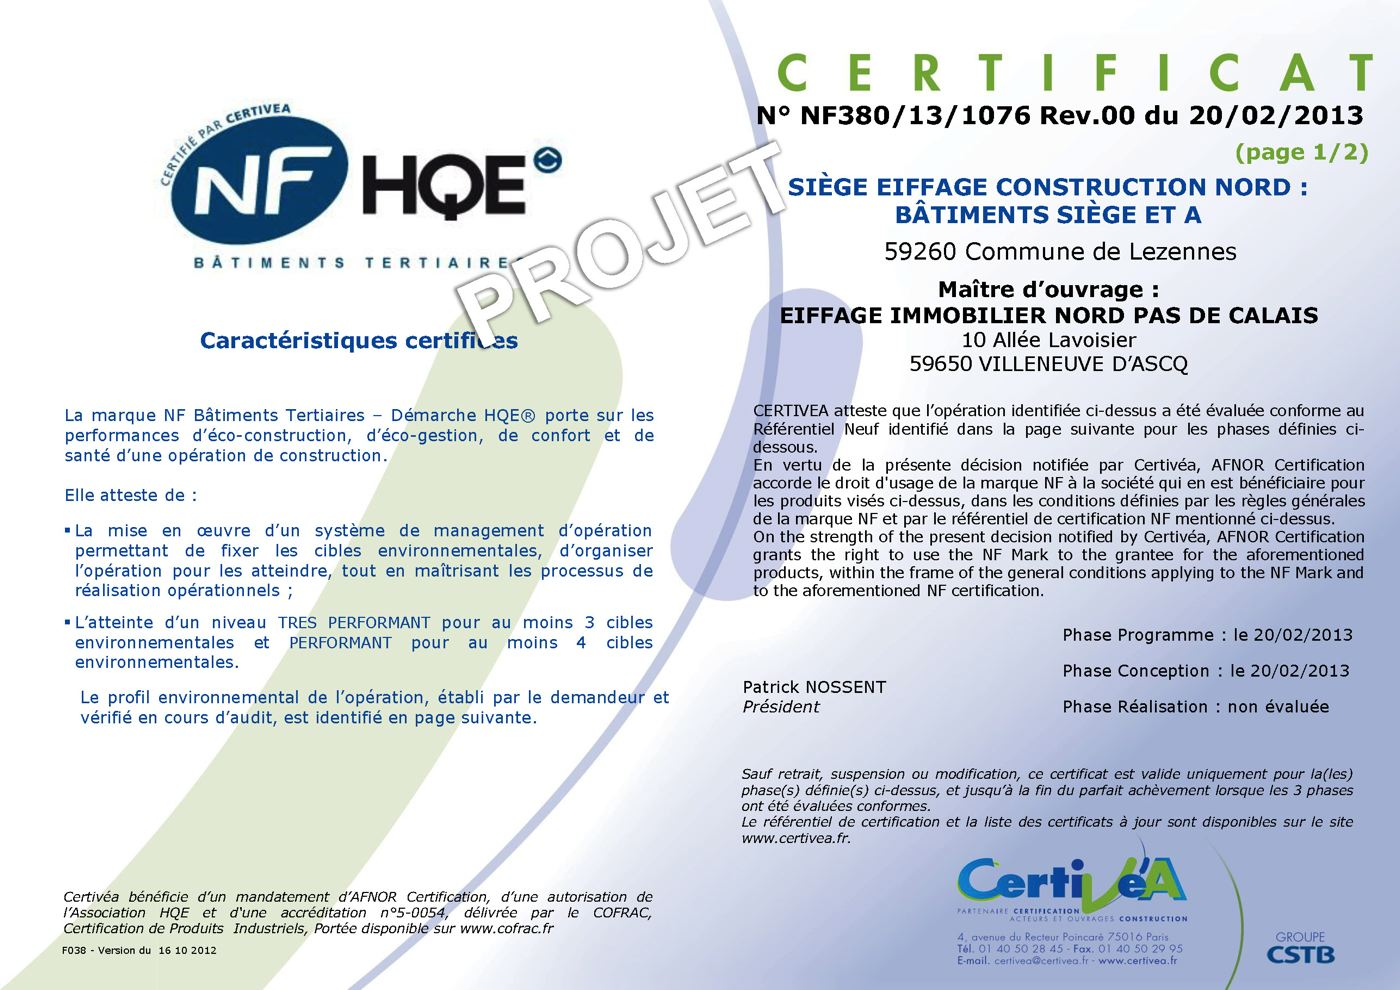 Eiffage siege nord_Certificat NF BT HQE__ PC_Page_1.jpg